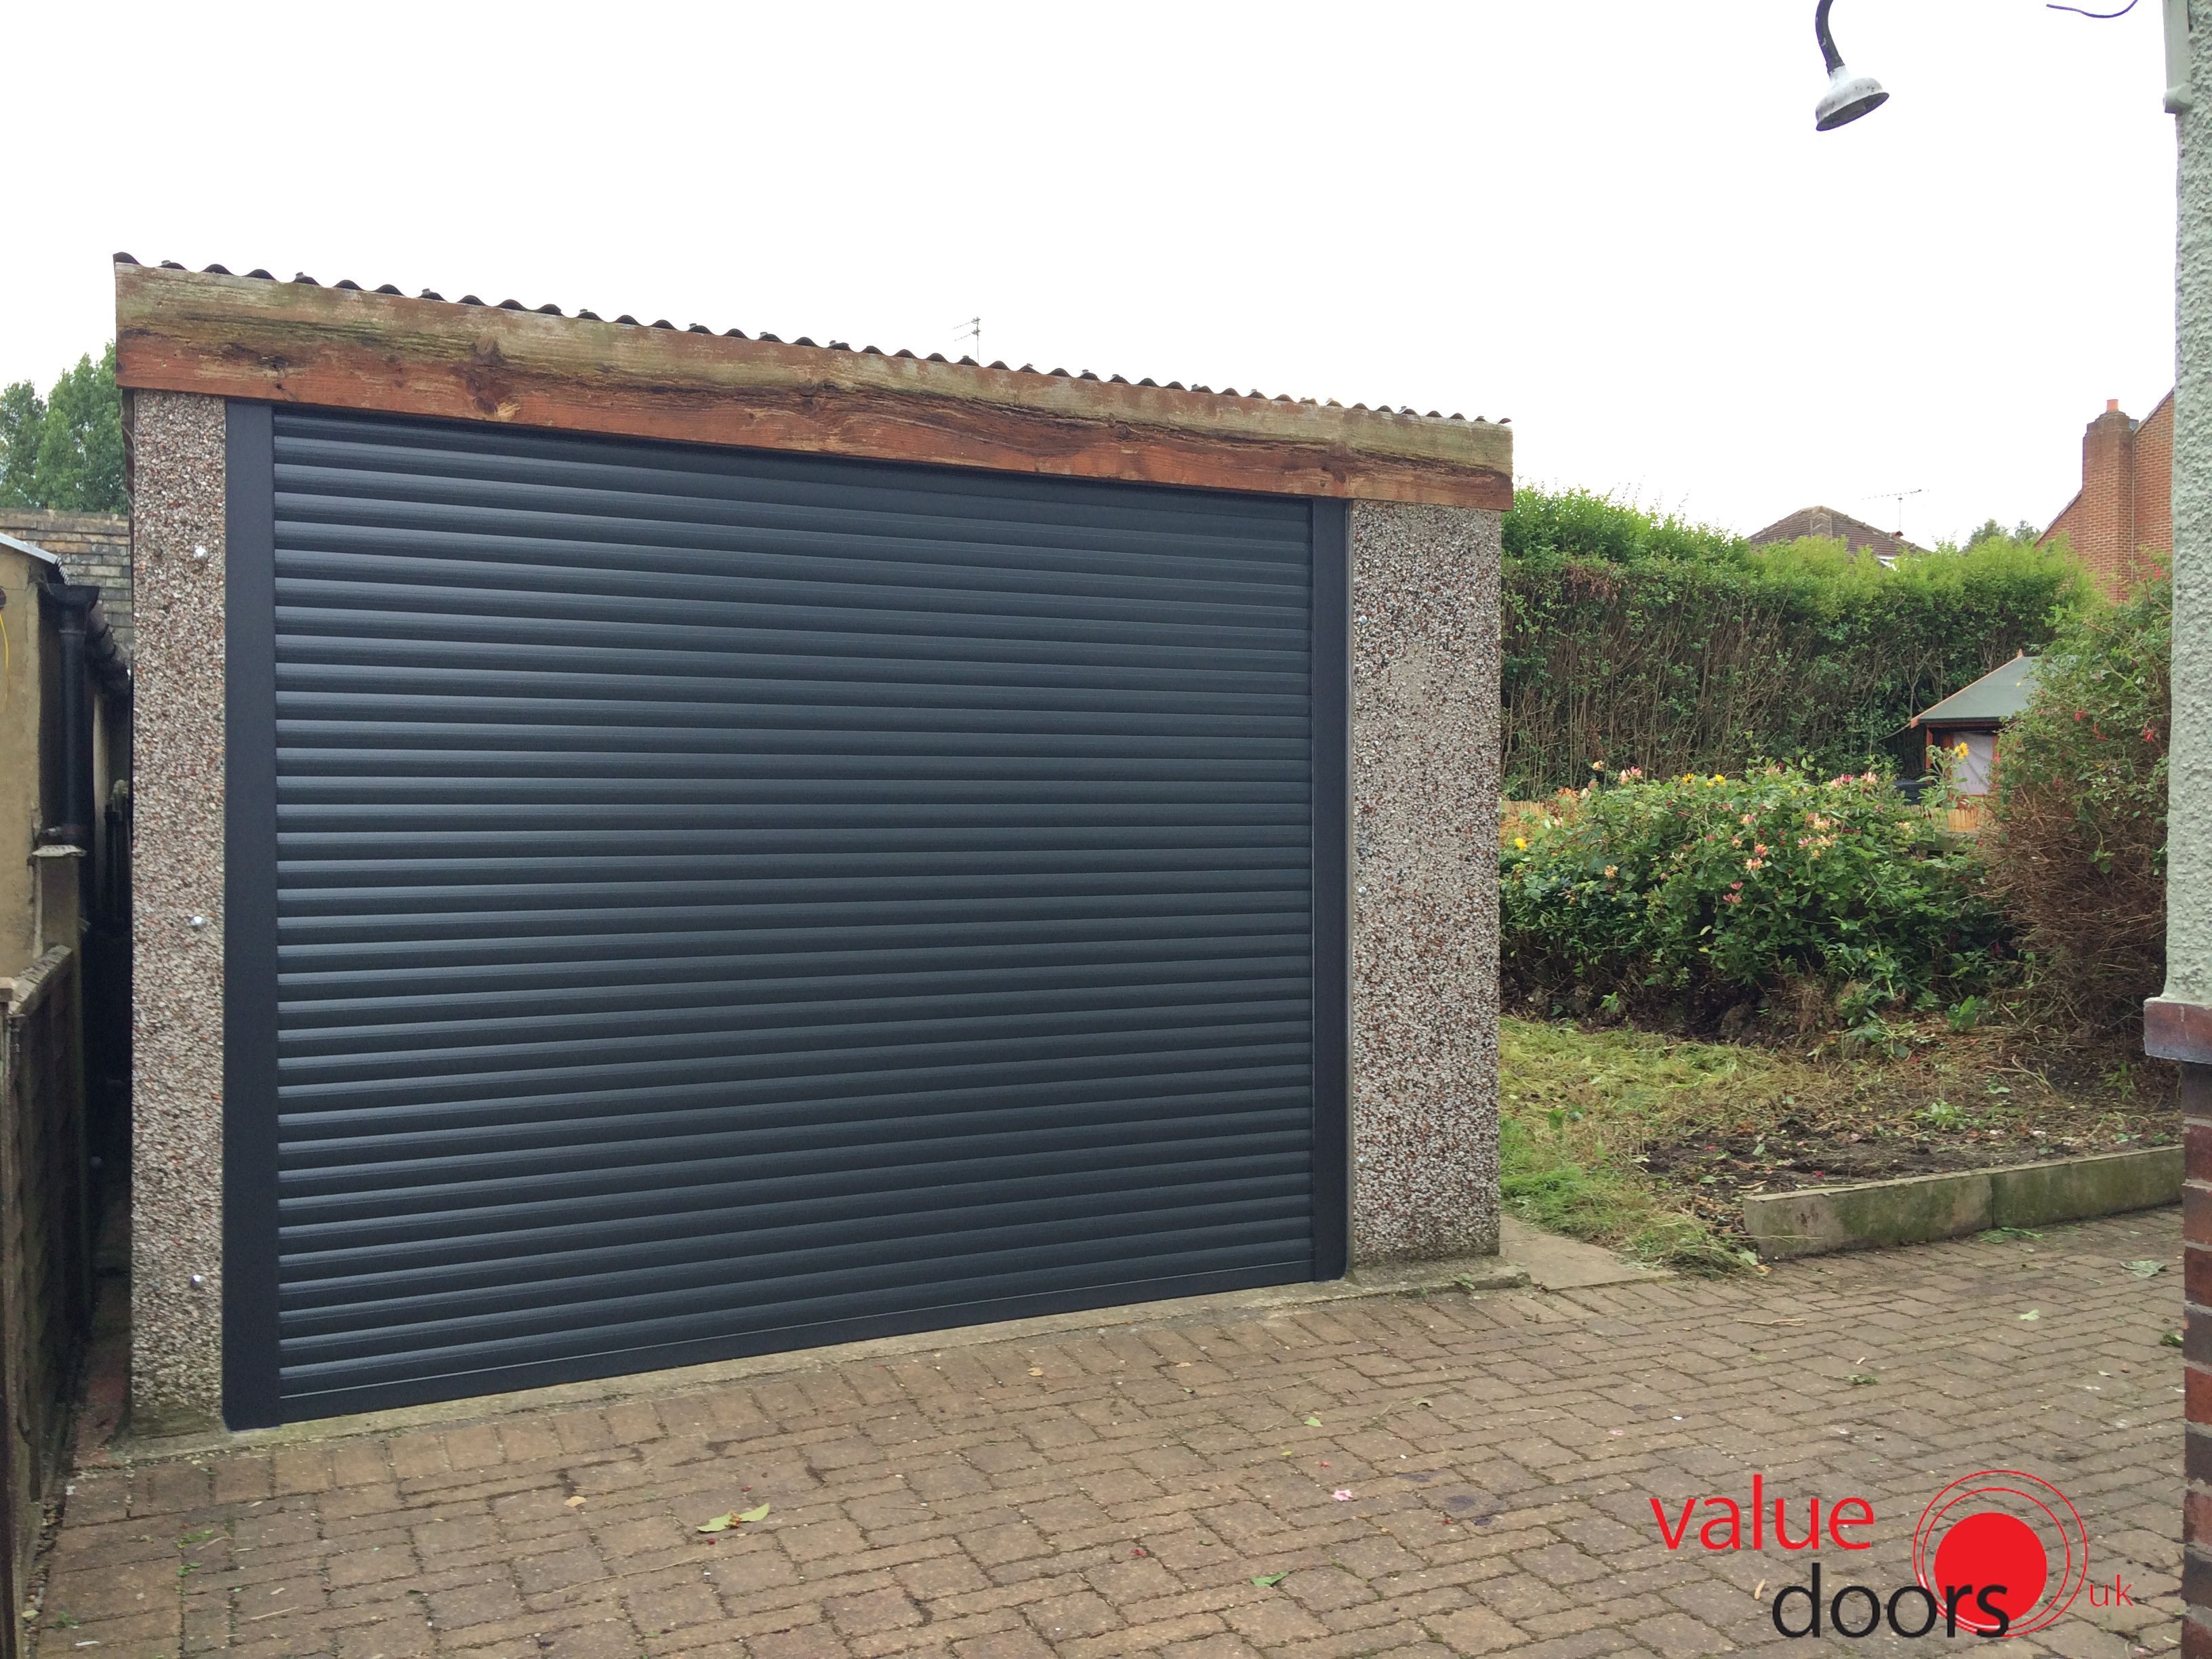 Our Roller Shutter Garage Door In Anthracite Grey Garage Doors Garage Door Styles Garage Door Design